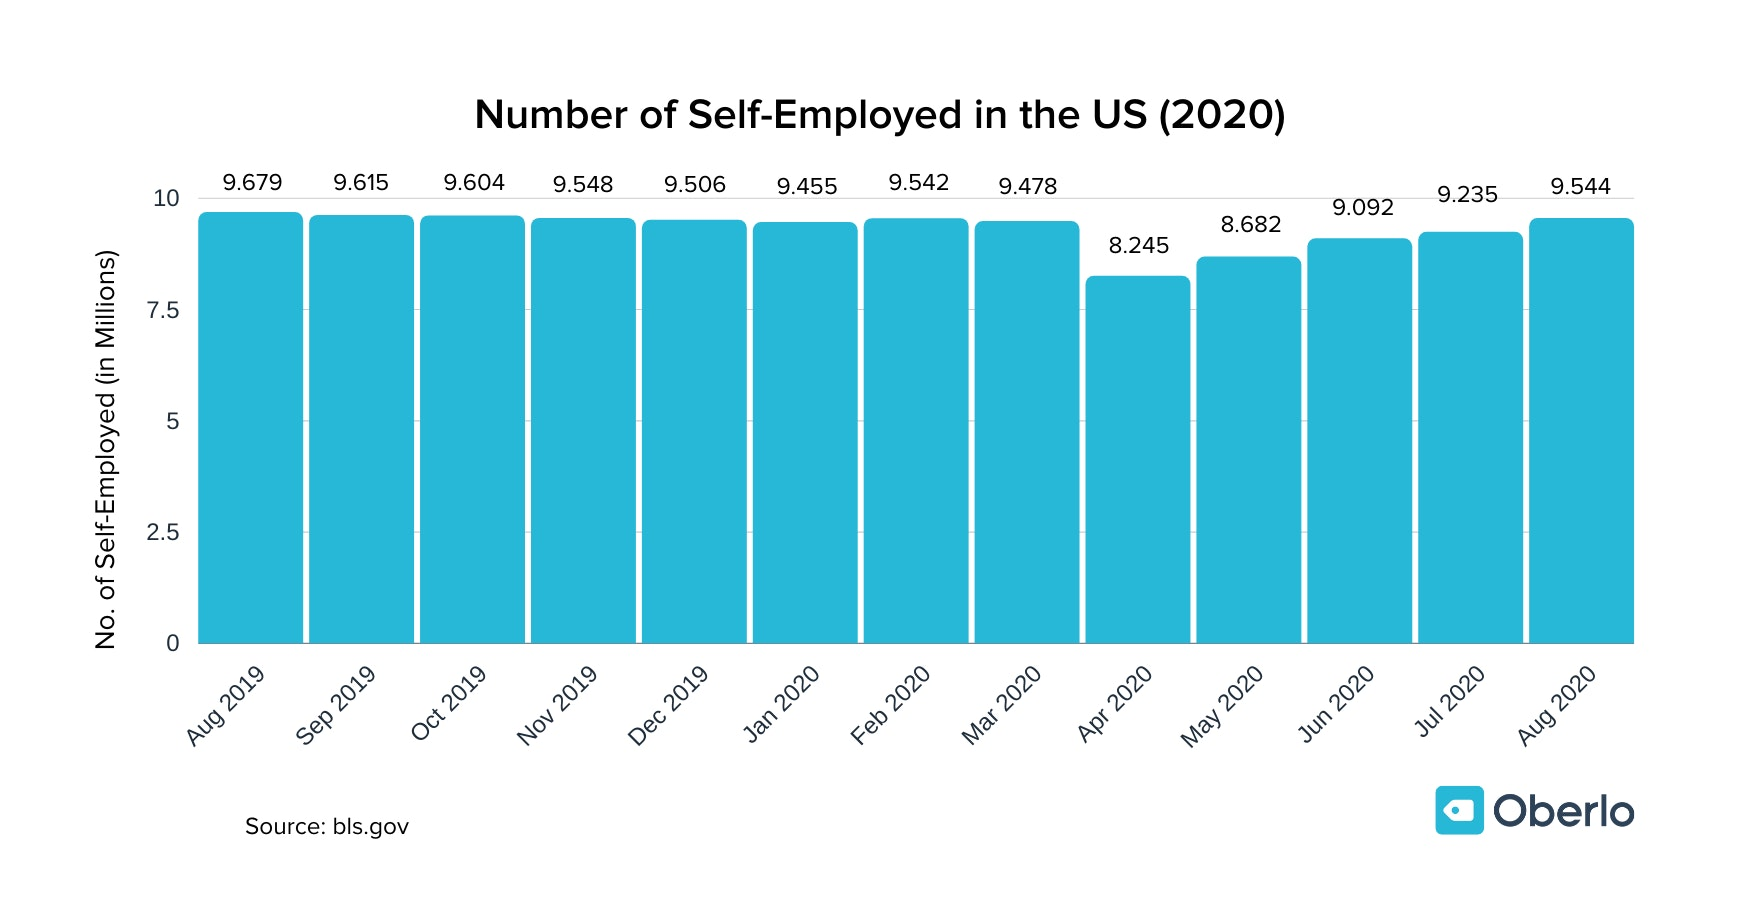 Number of Self-Employed in the US graph (2020)